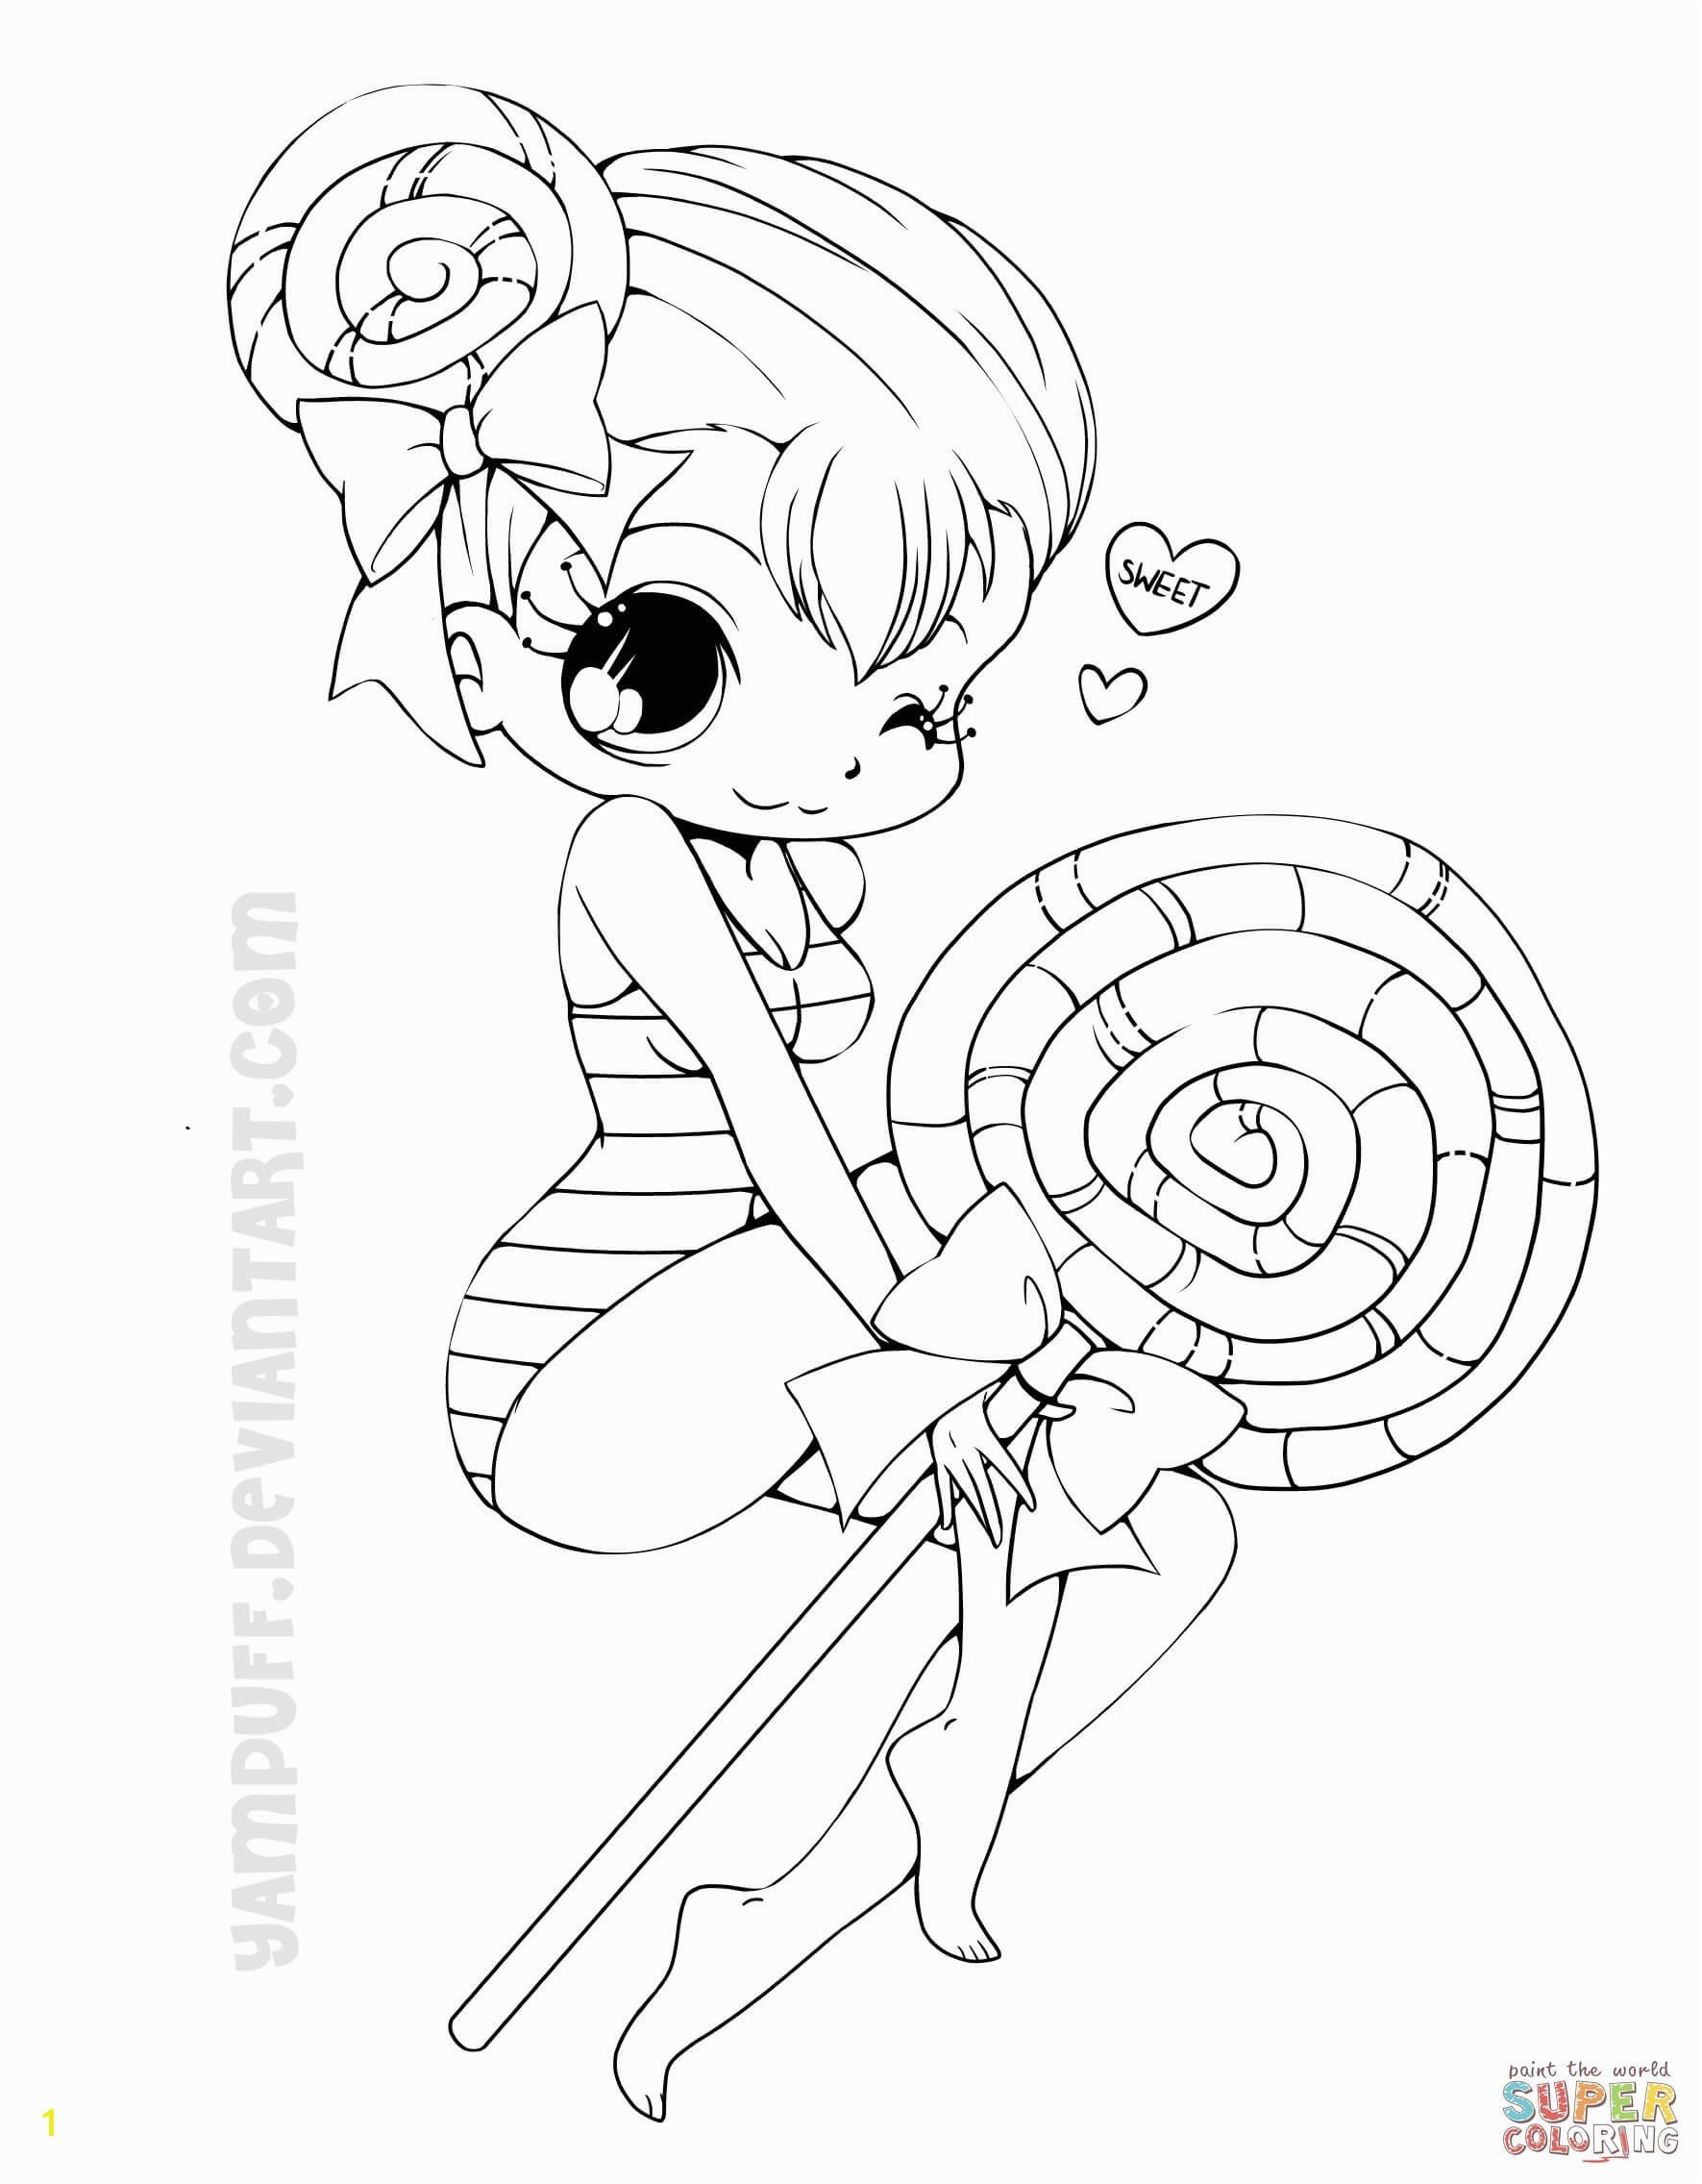 Kawaii Anime Girl Coloring Pages Coloring Pages Anime Girls Cute Anime Chibi Girl Coloring Pages